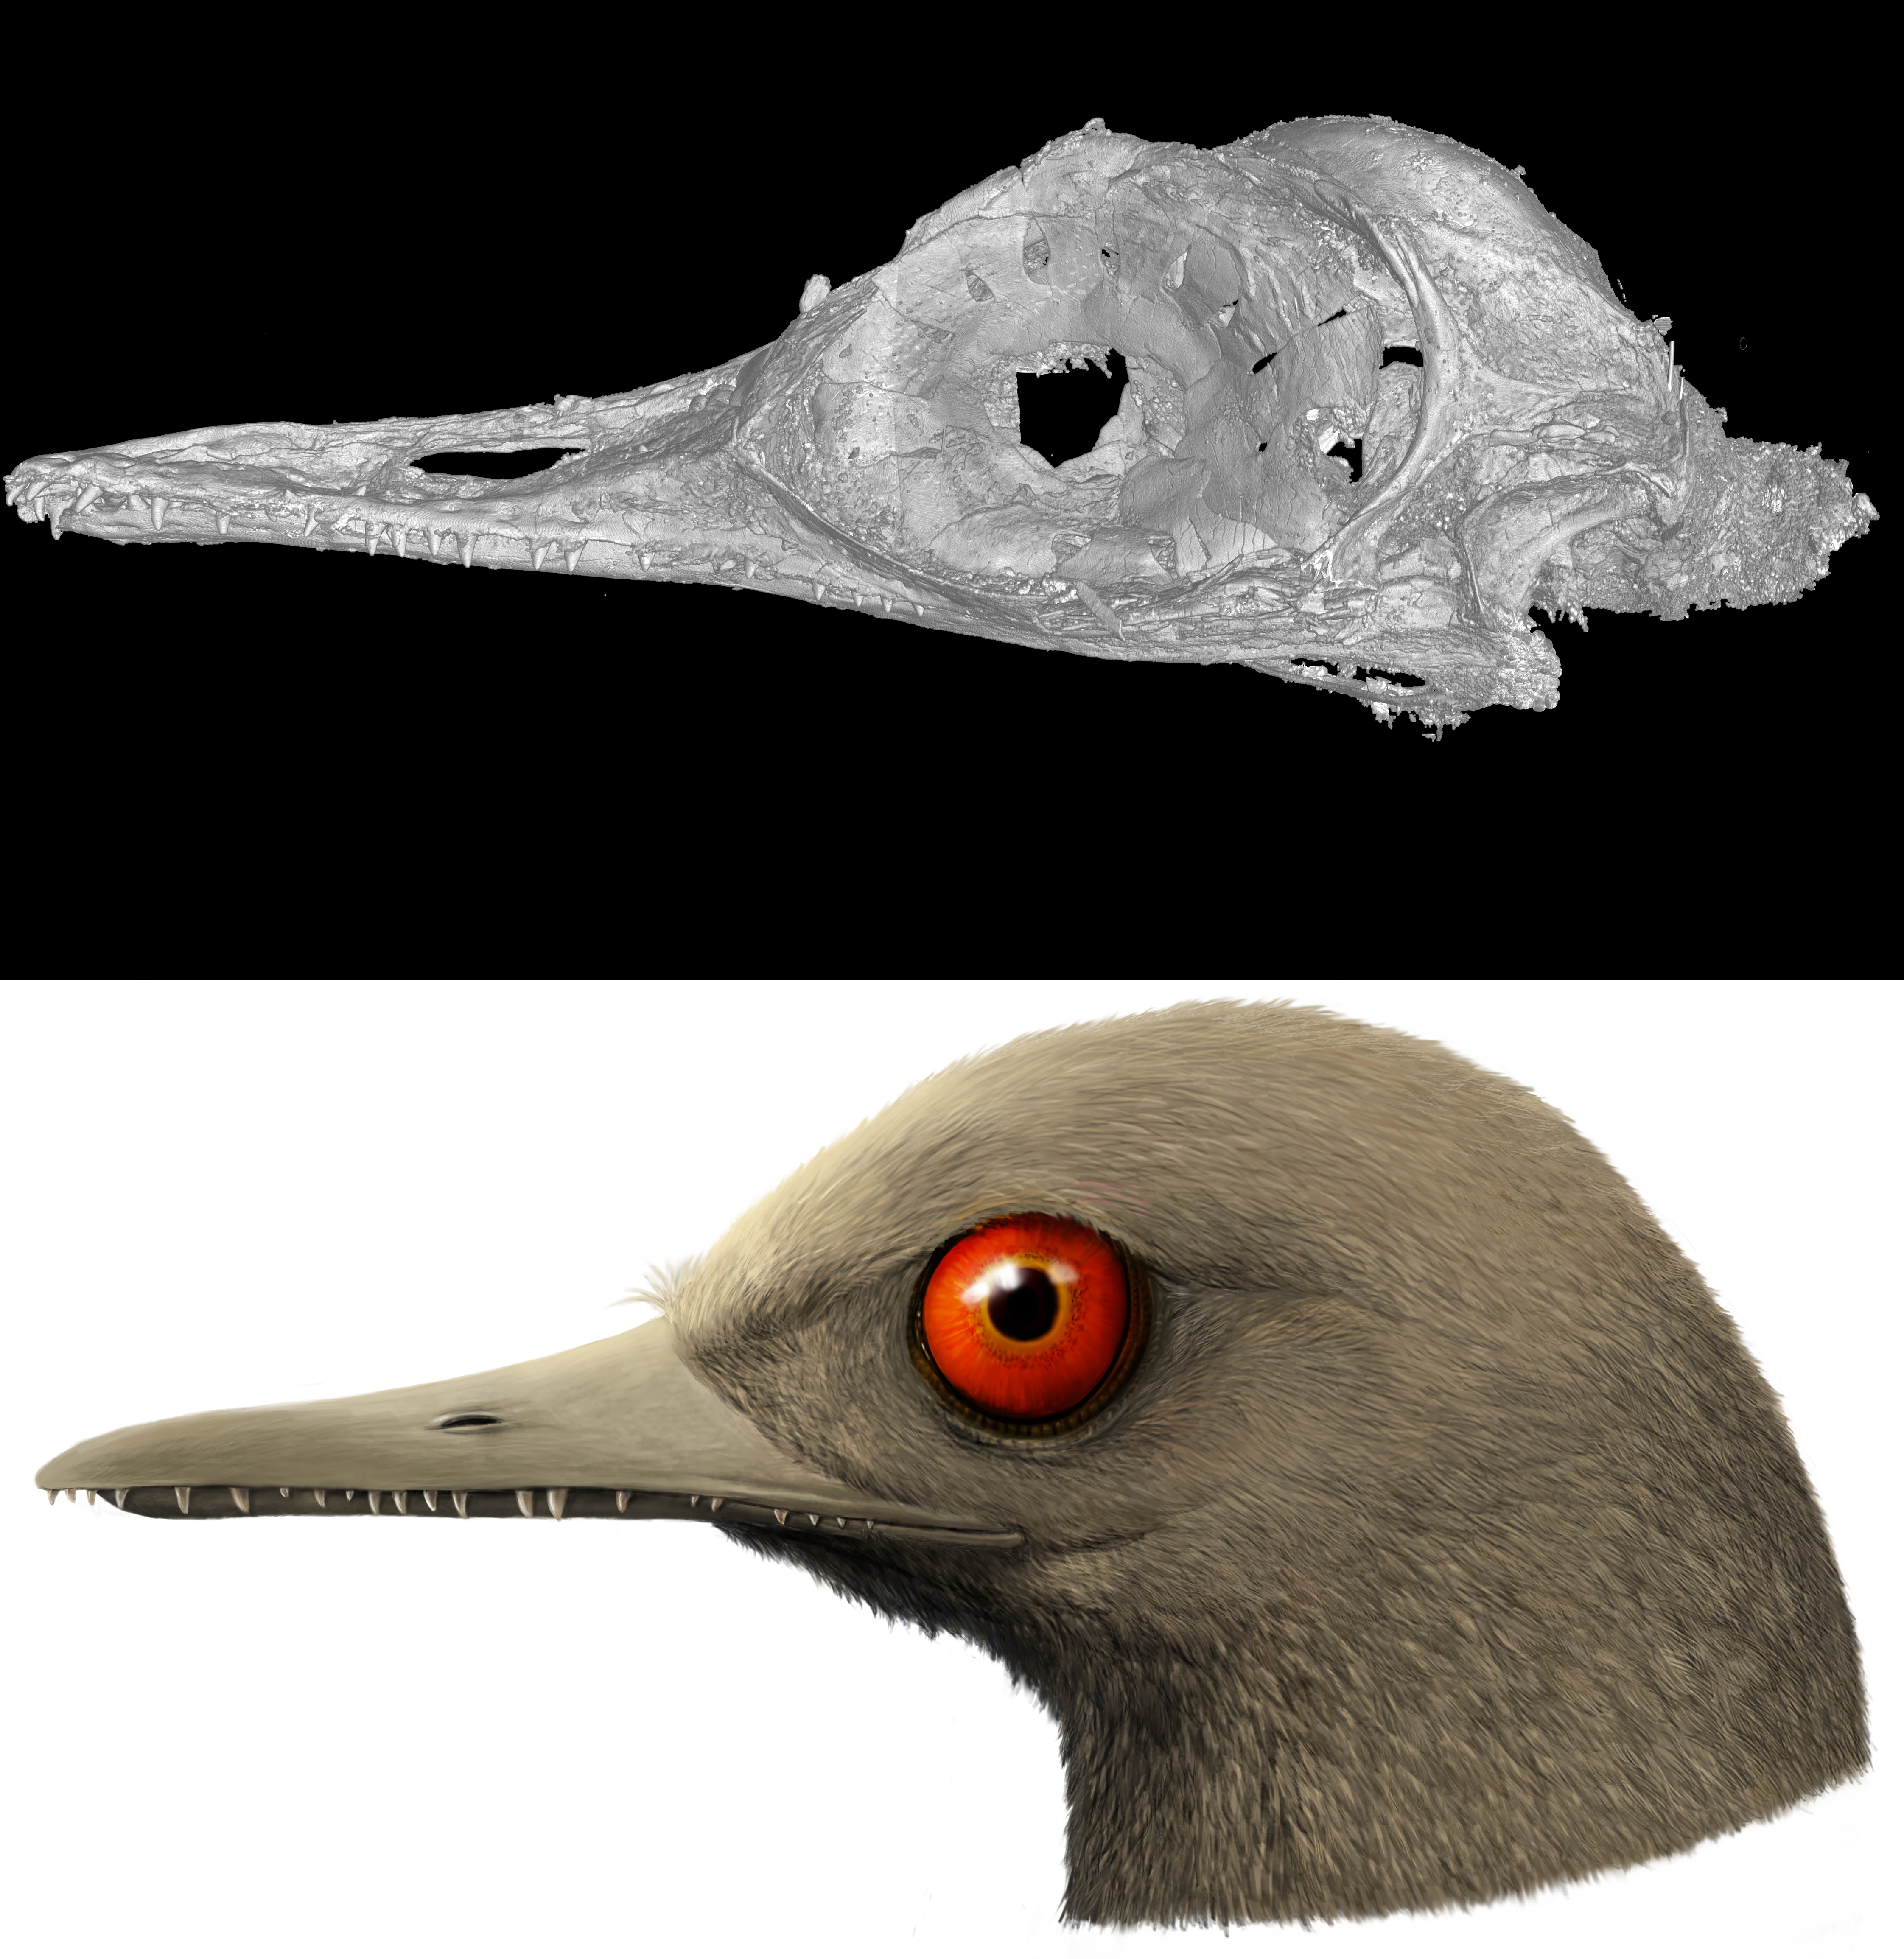 A CT scan of the skull of Oculudentavis by LI Gang, and an artistic rendering of Oculudentavis by HAN Zhixin, imagining what it looked like while alive 99 million years ago. (LI Gang; HAN Zhixin / Los Angeles Natural History Museum)